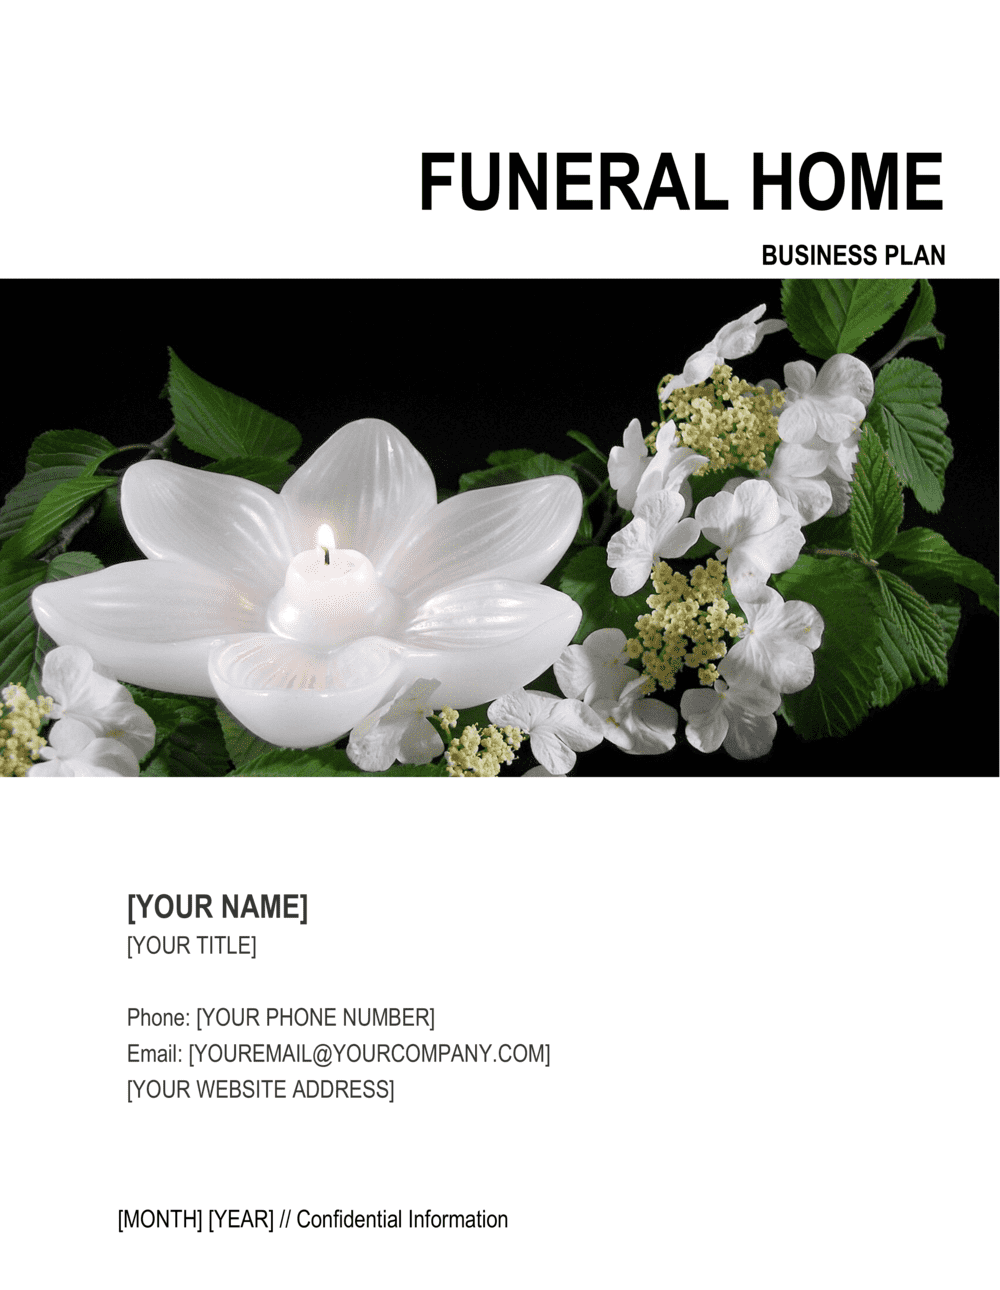 Business-in-a-Box's Funeral Home Business Plan Template